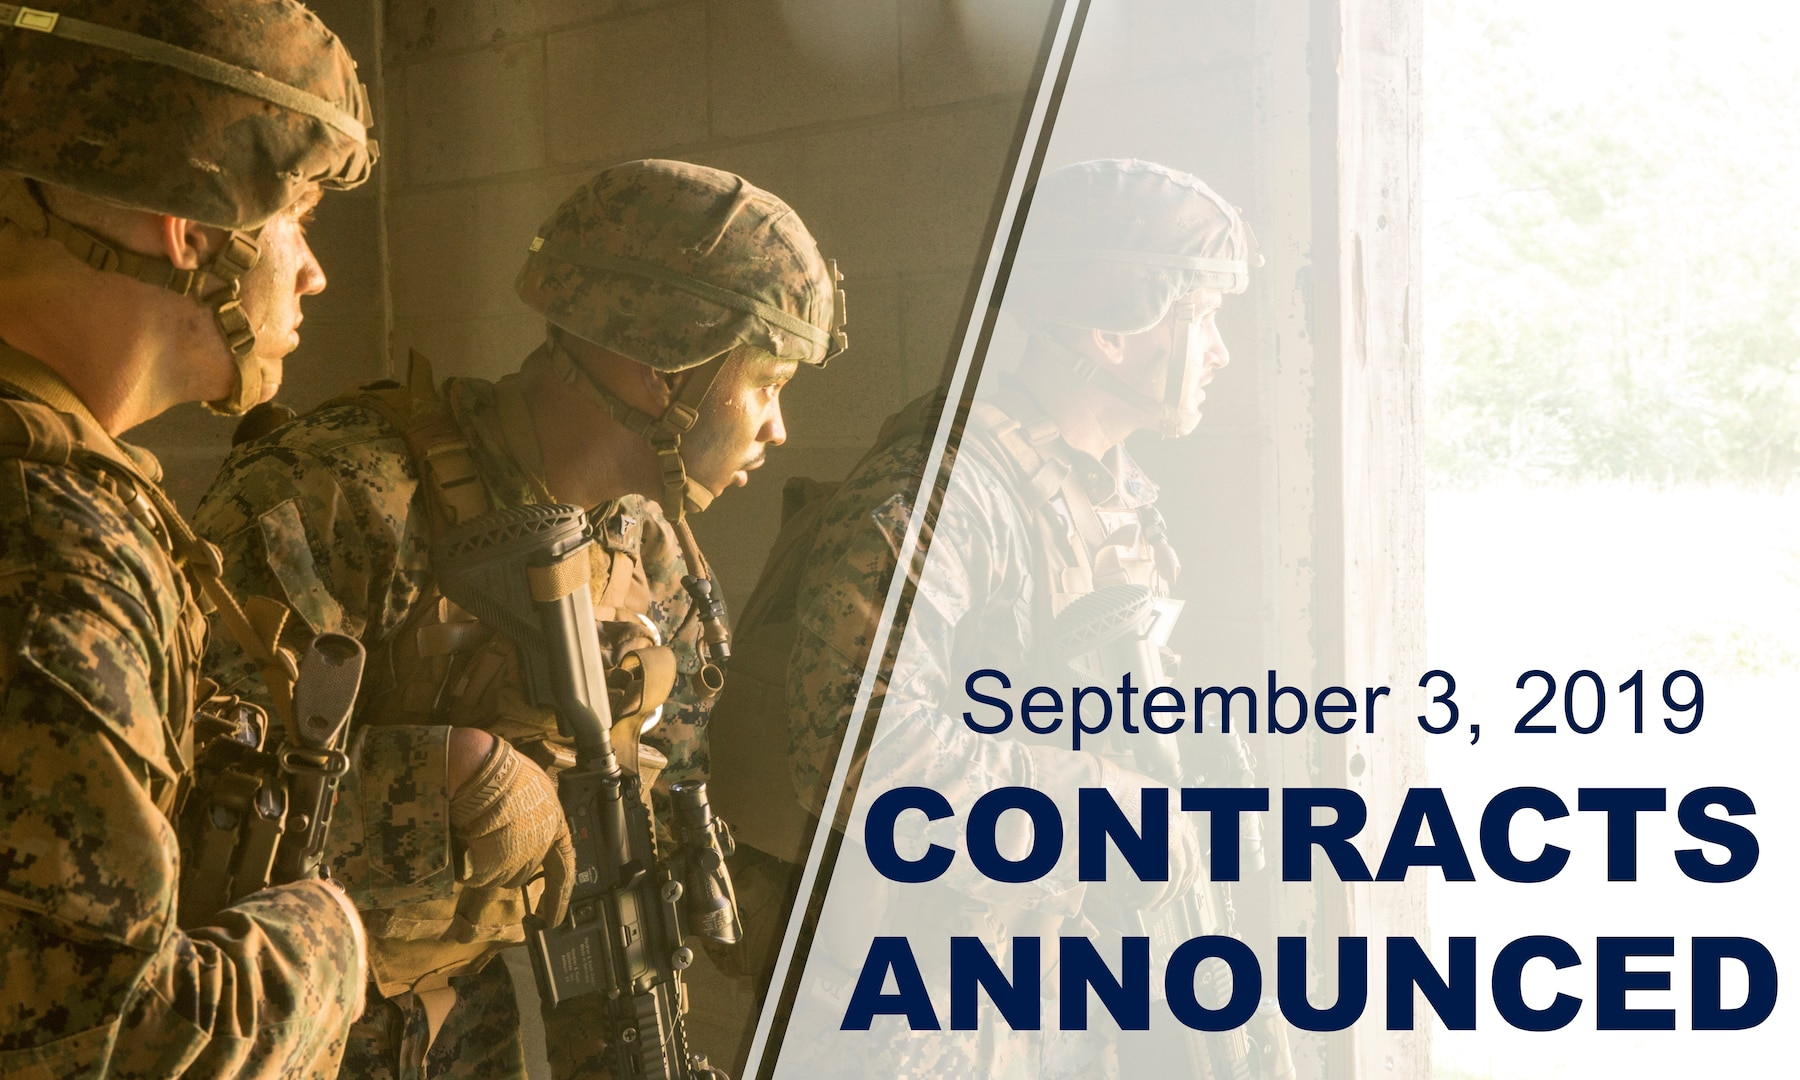 """Three marines stand inside doorway, looking out. Graphic reads: """"September 3, 2019 Contracts Announced."""""""